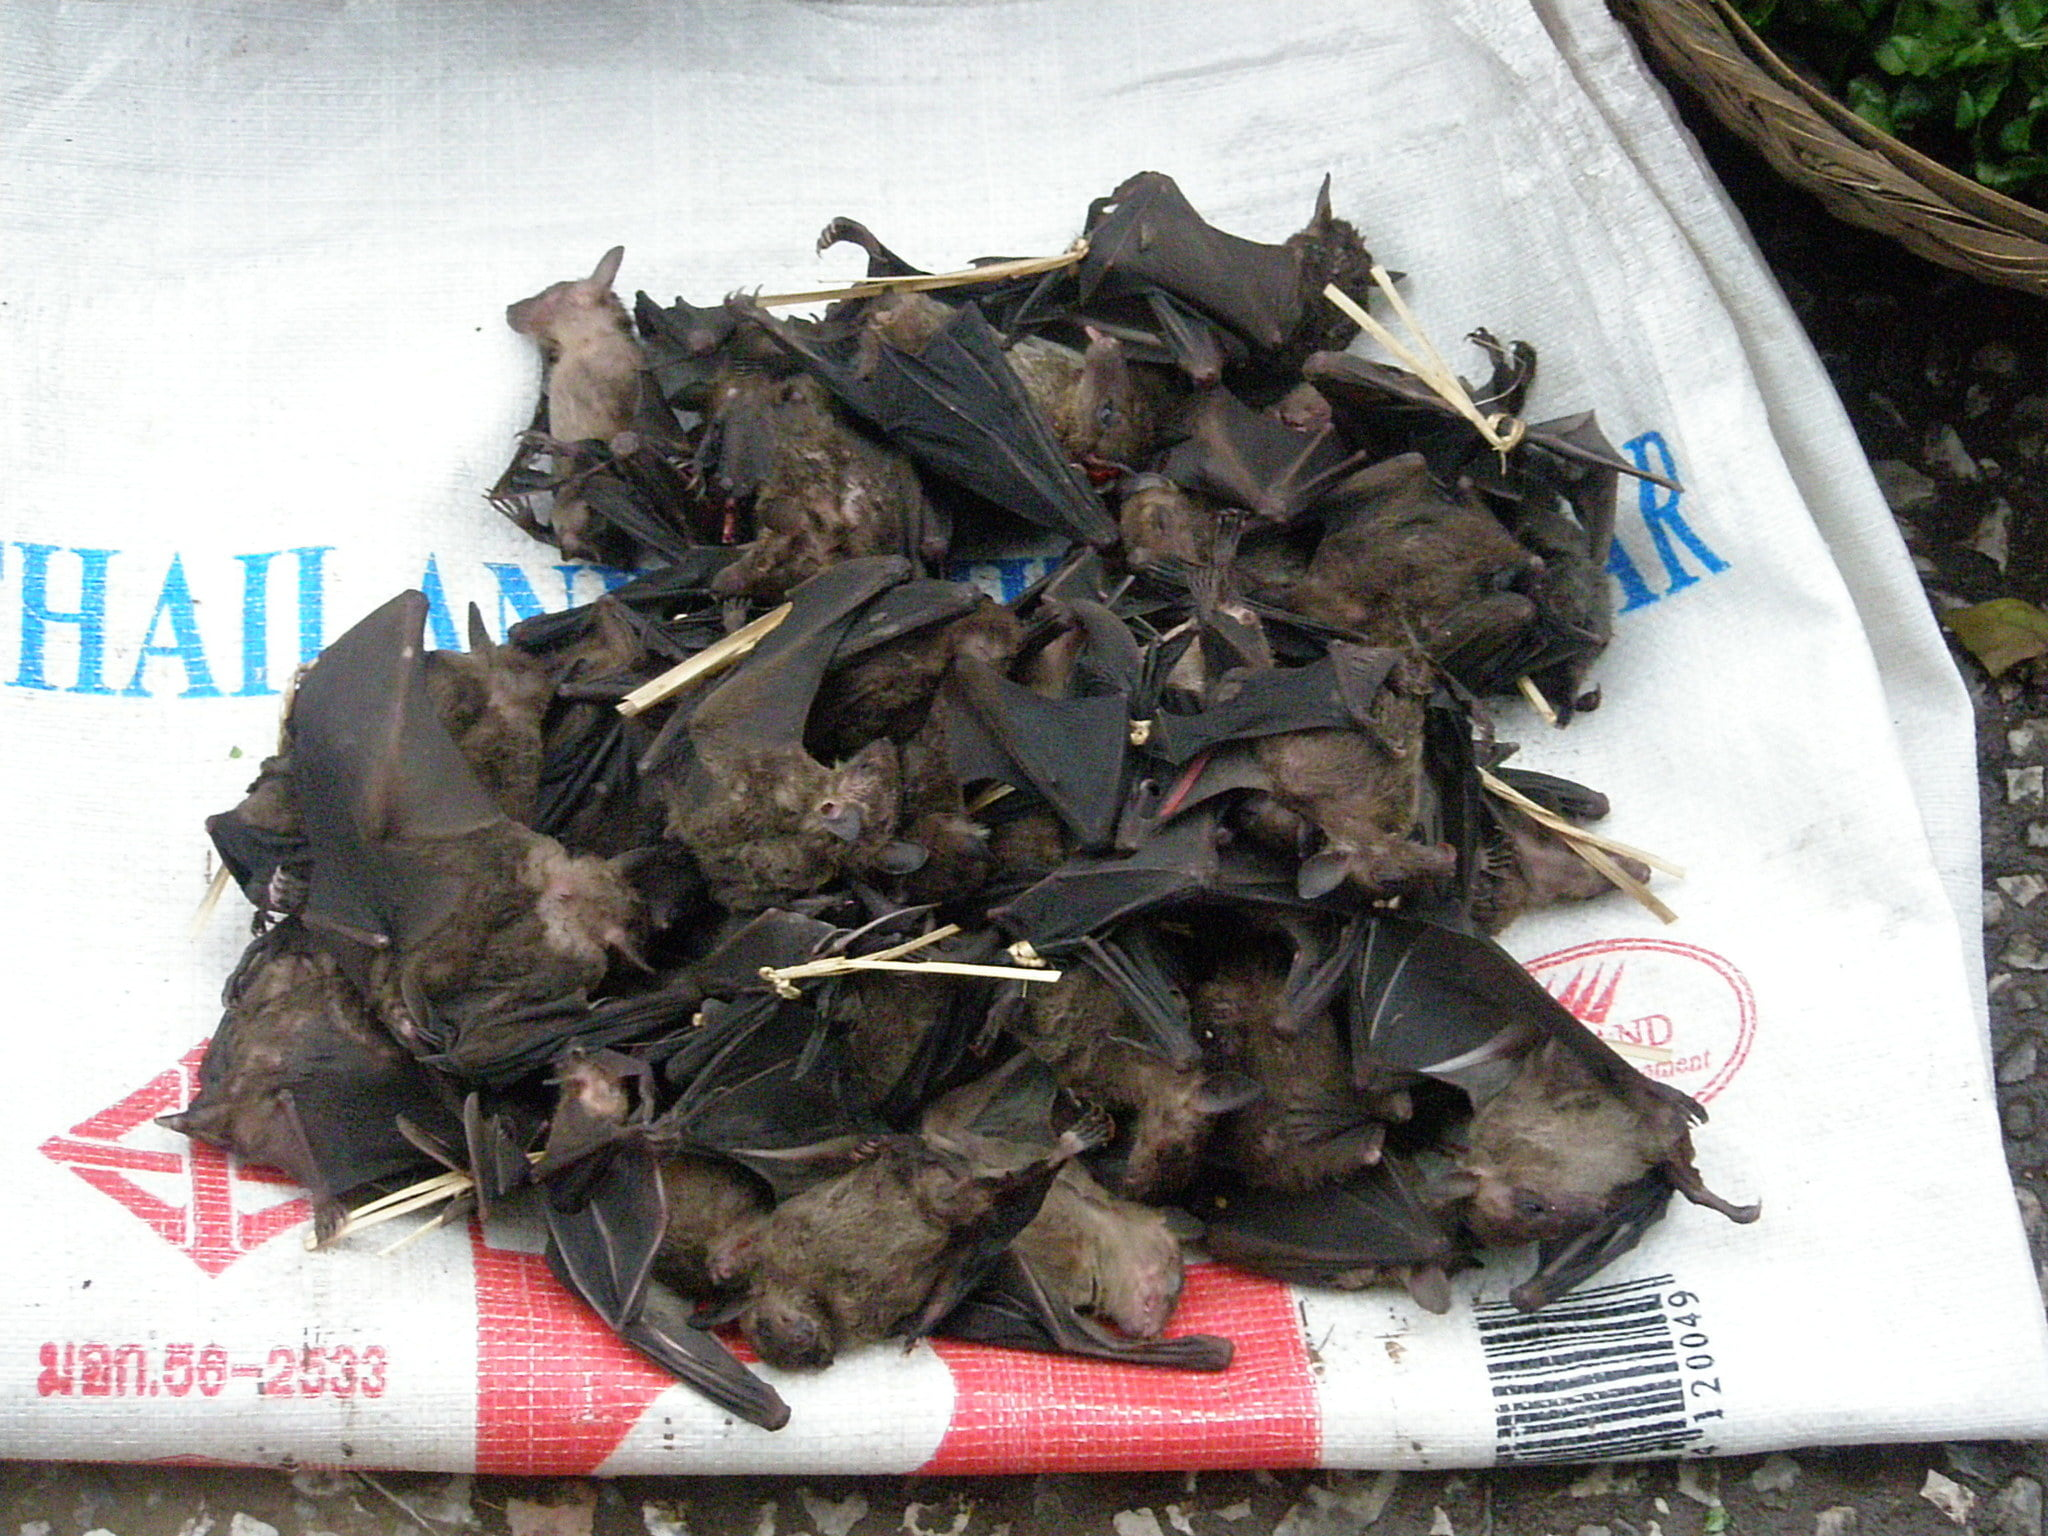 'I Was on Ambien When I Ate the Bat' Wuhan Wet Market Customer Admits